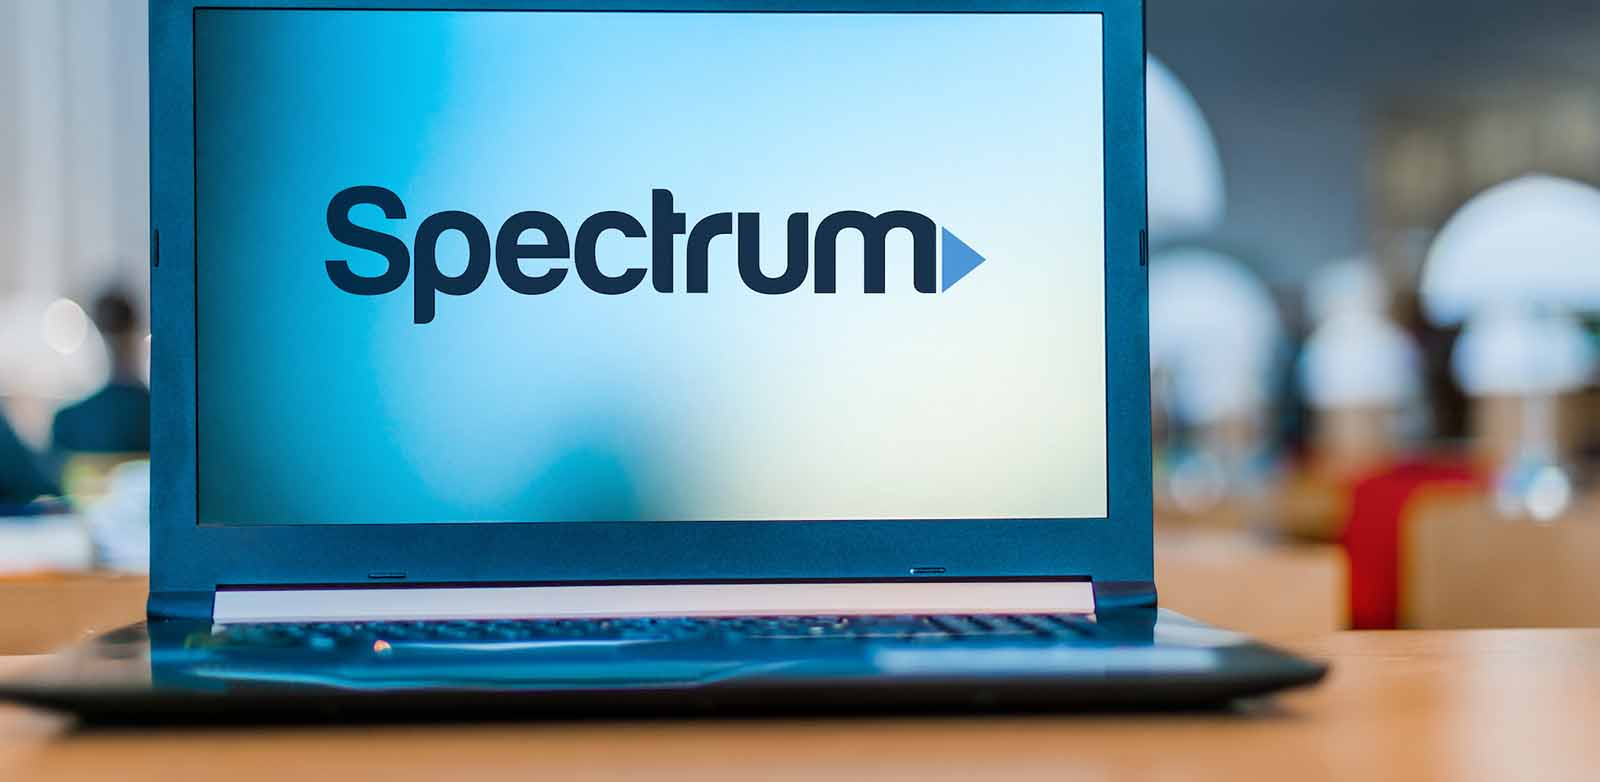 As many businesses try to figure out how to make it through the pandemic, Charter Spectrum weighs all its businesses to see how they'll survive.